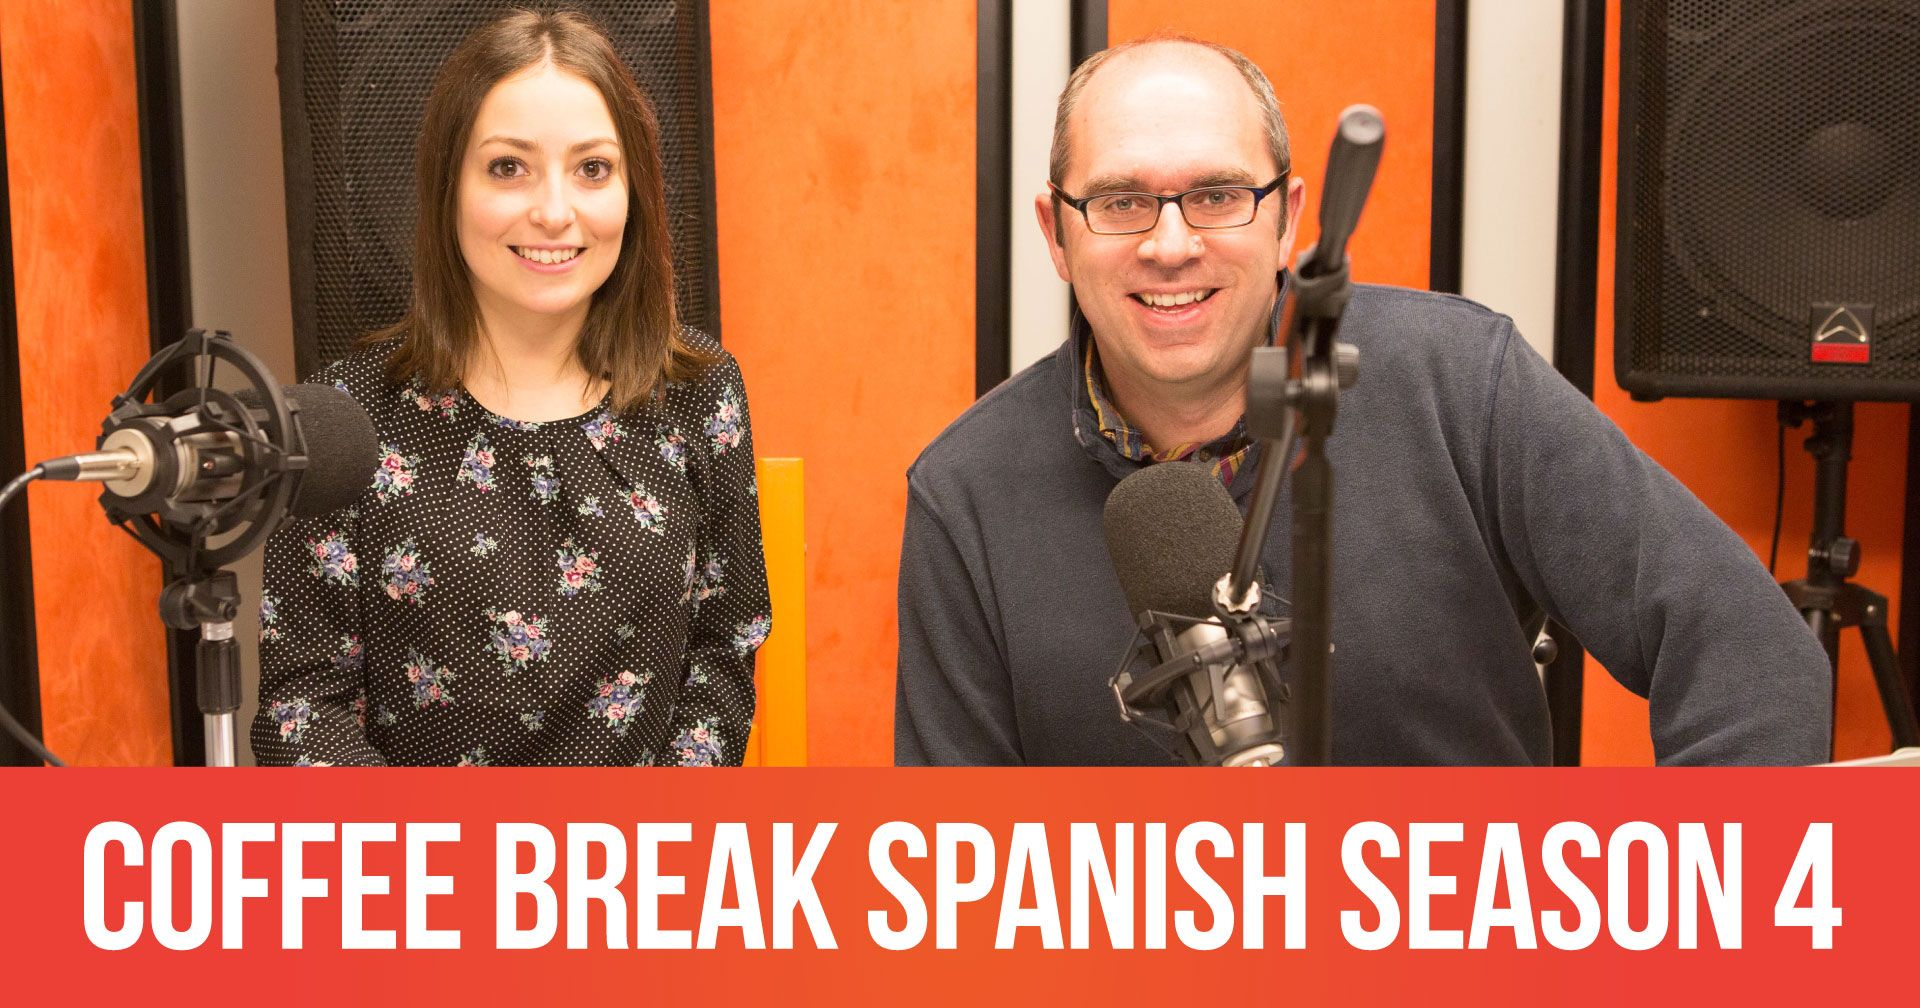 Coffee Break Spanish season 4